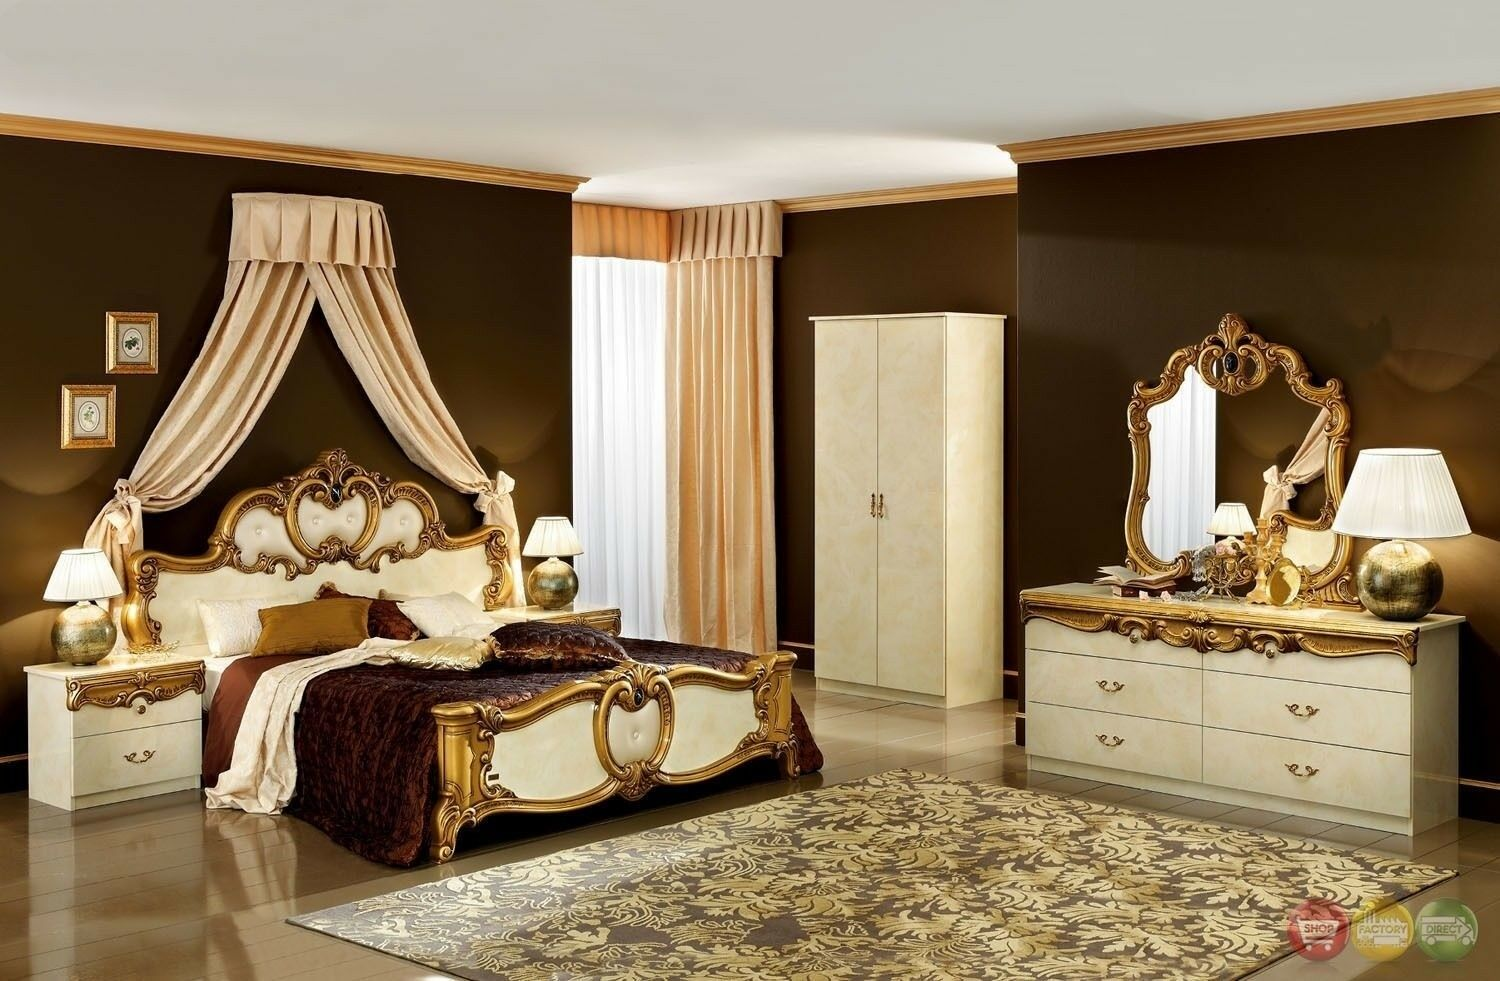 Esf Barocco Traditional Ivory Color Classic Italian King Size Bedroom Set Bedroom Sets